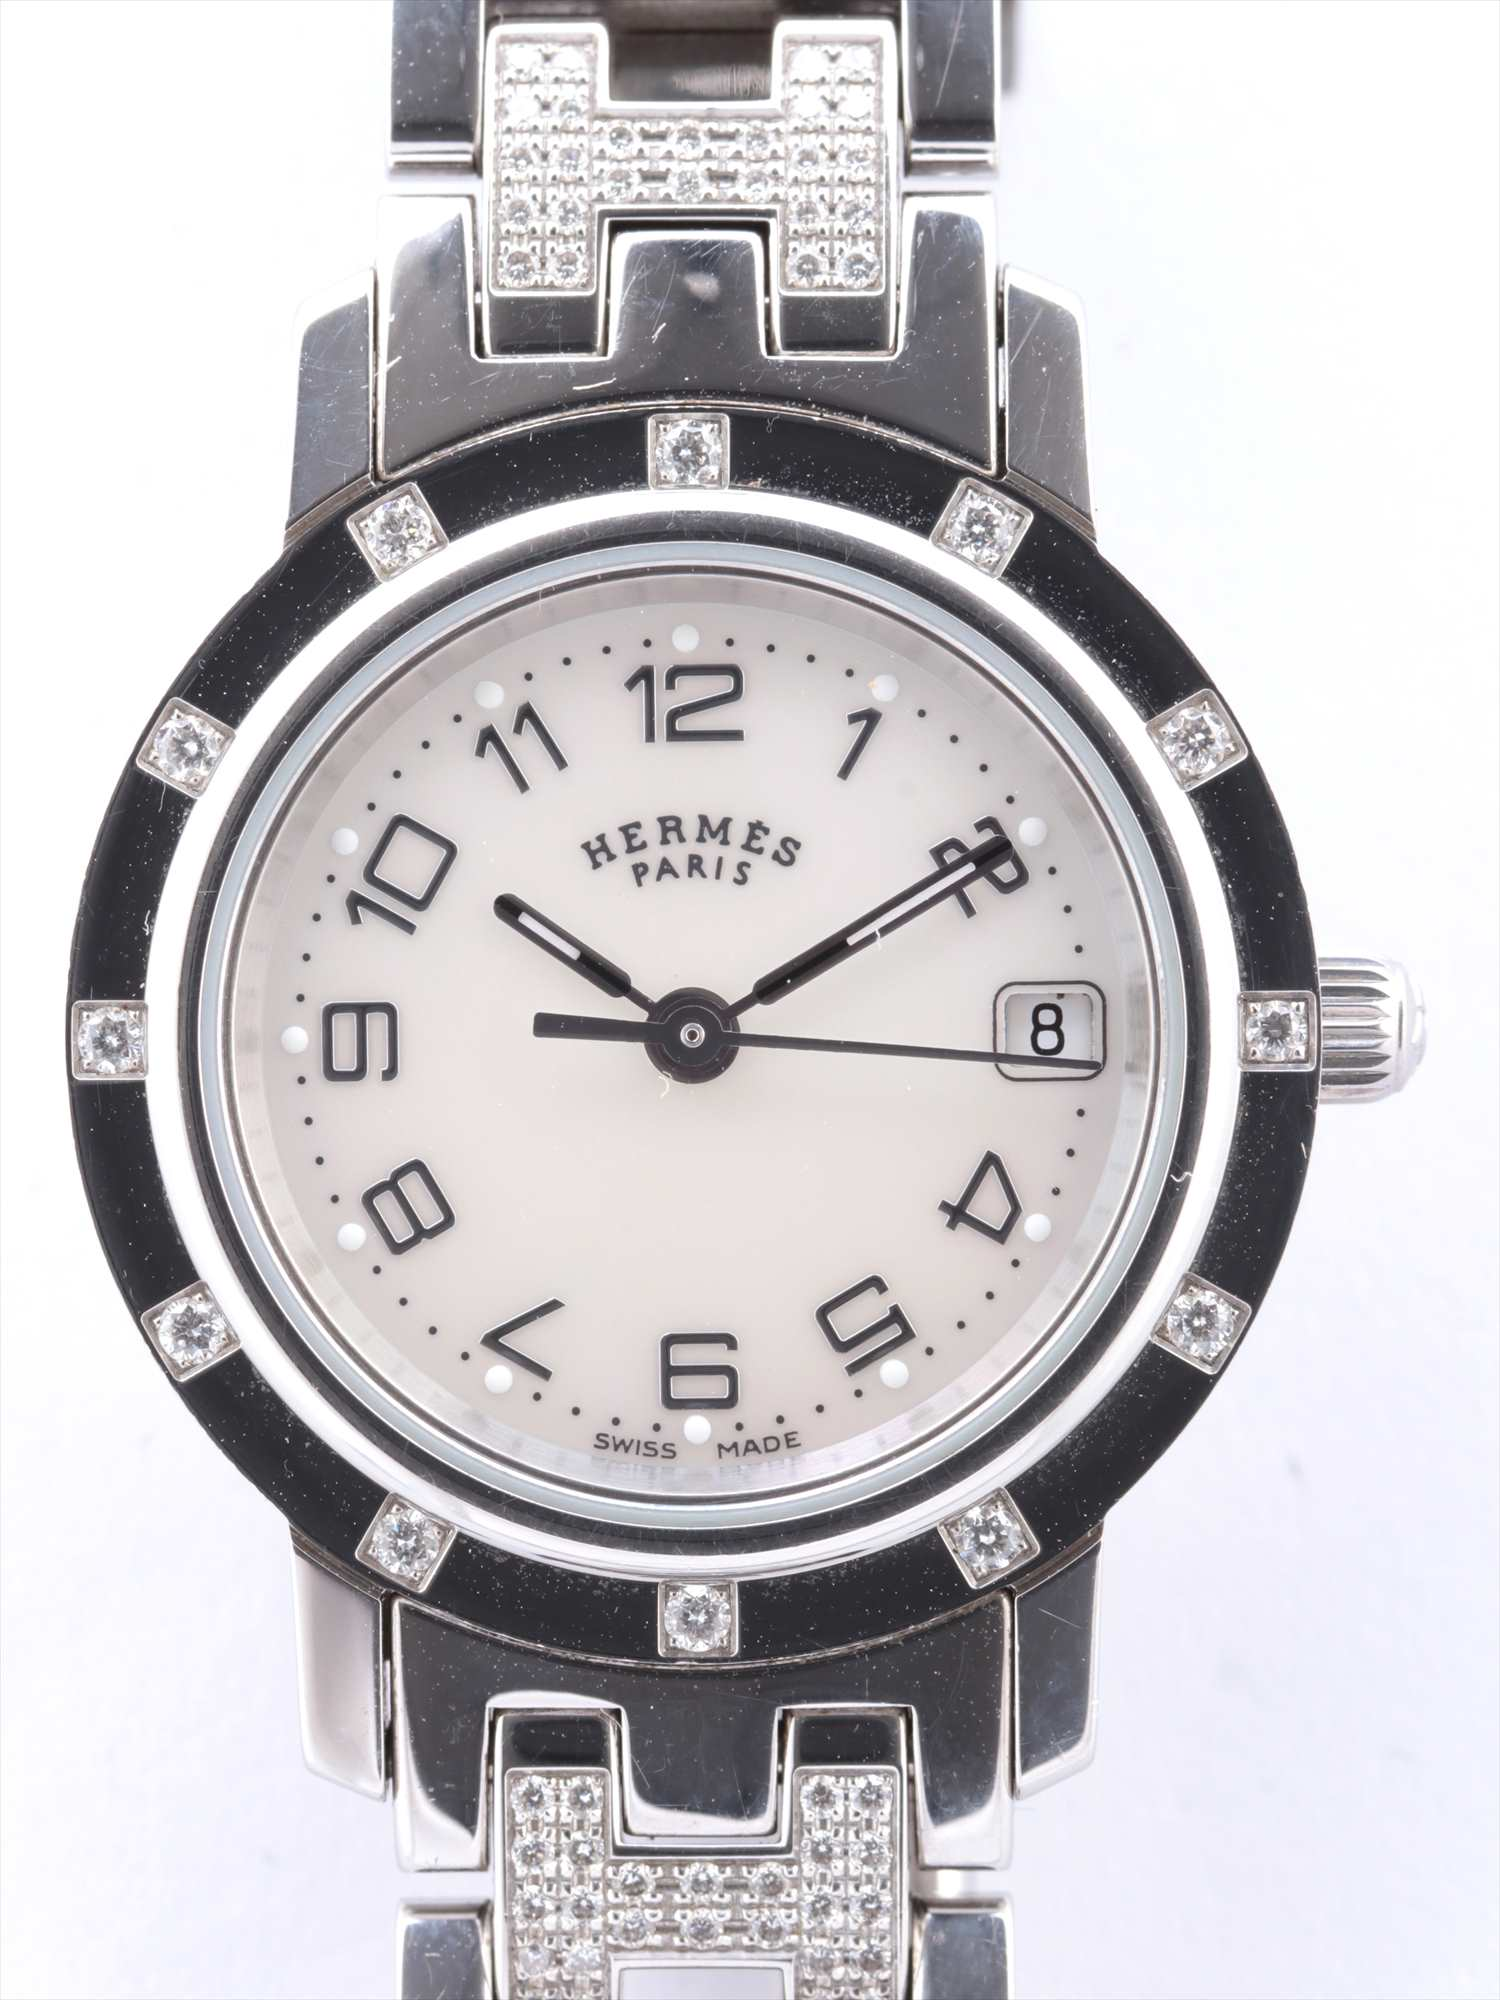 [Used goods] Hermes Clipper nacres CL4.230 SS QZ shell dial too much sesame seeds 1 paved diamond bezel 12PD